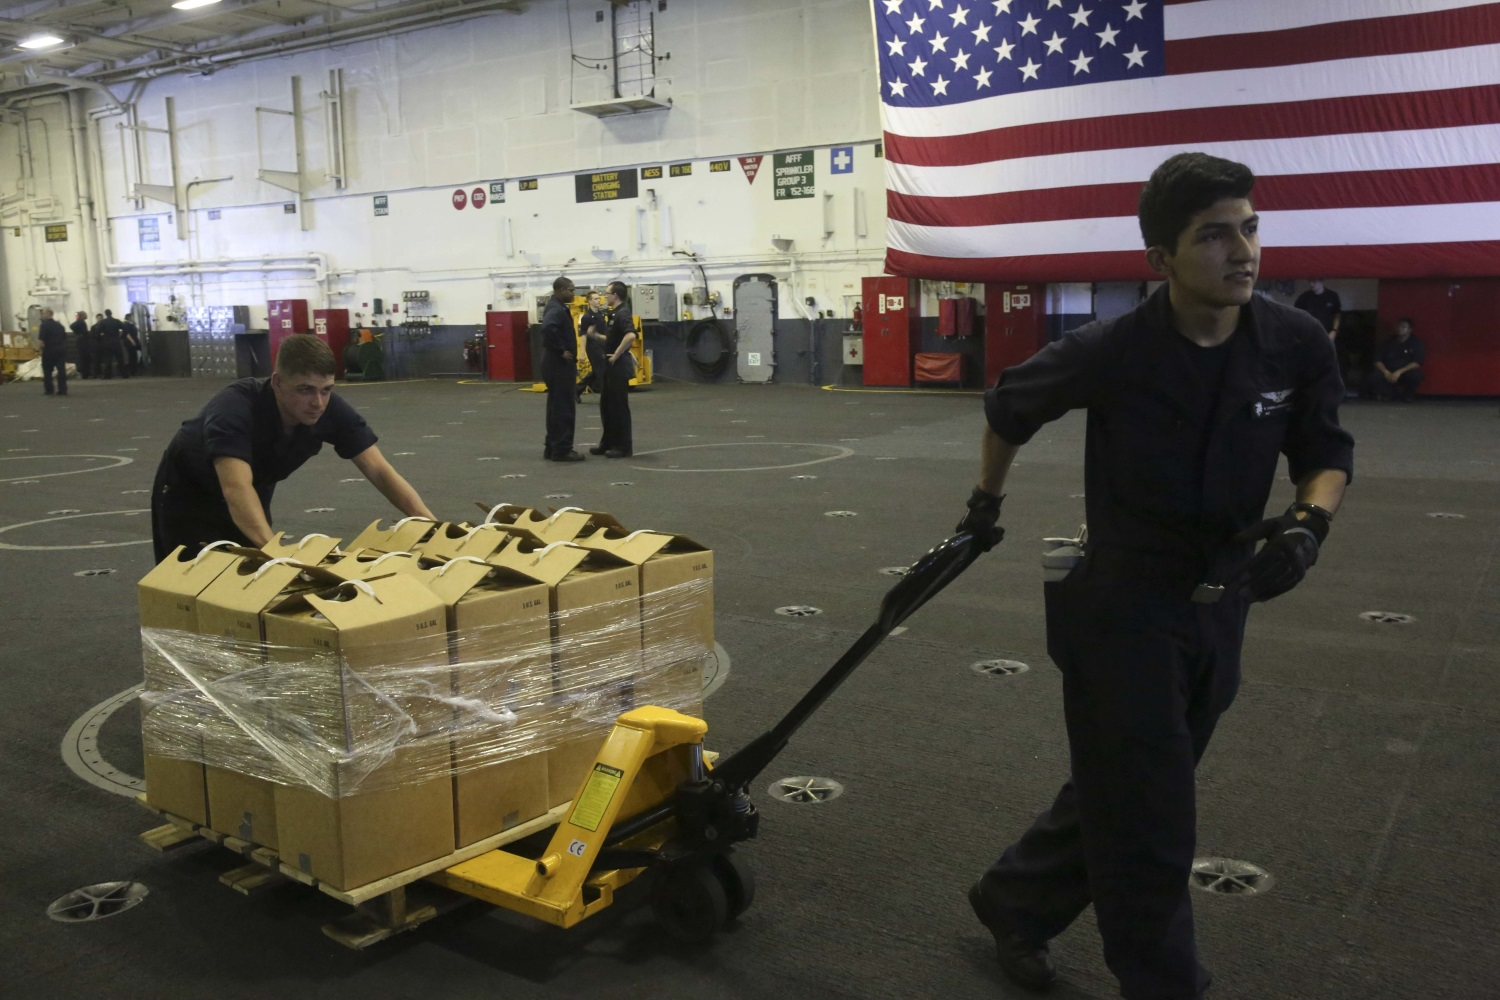 Sailors aboard the Nimitz-Class aircraft carrier USS Abraham Lincoln (CVN 72) move pallets of water on Sept. 11, 2017, in preparation to support those affected by Hurricane Irma. (Aviation Boatswain's Mate (Equipment) 2nd Class Lauren D. Smith/Navy)